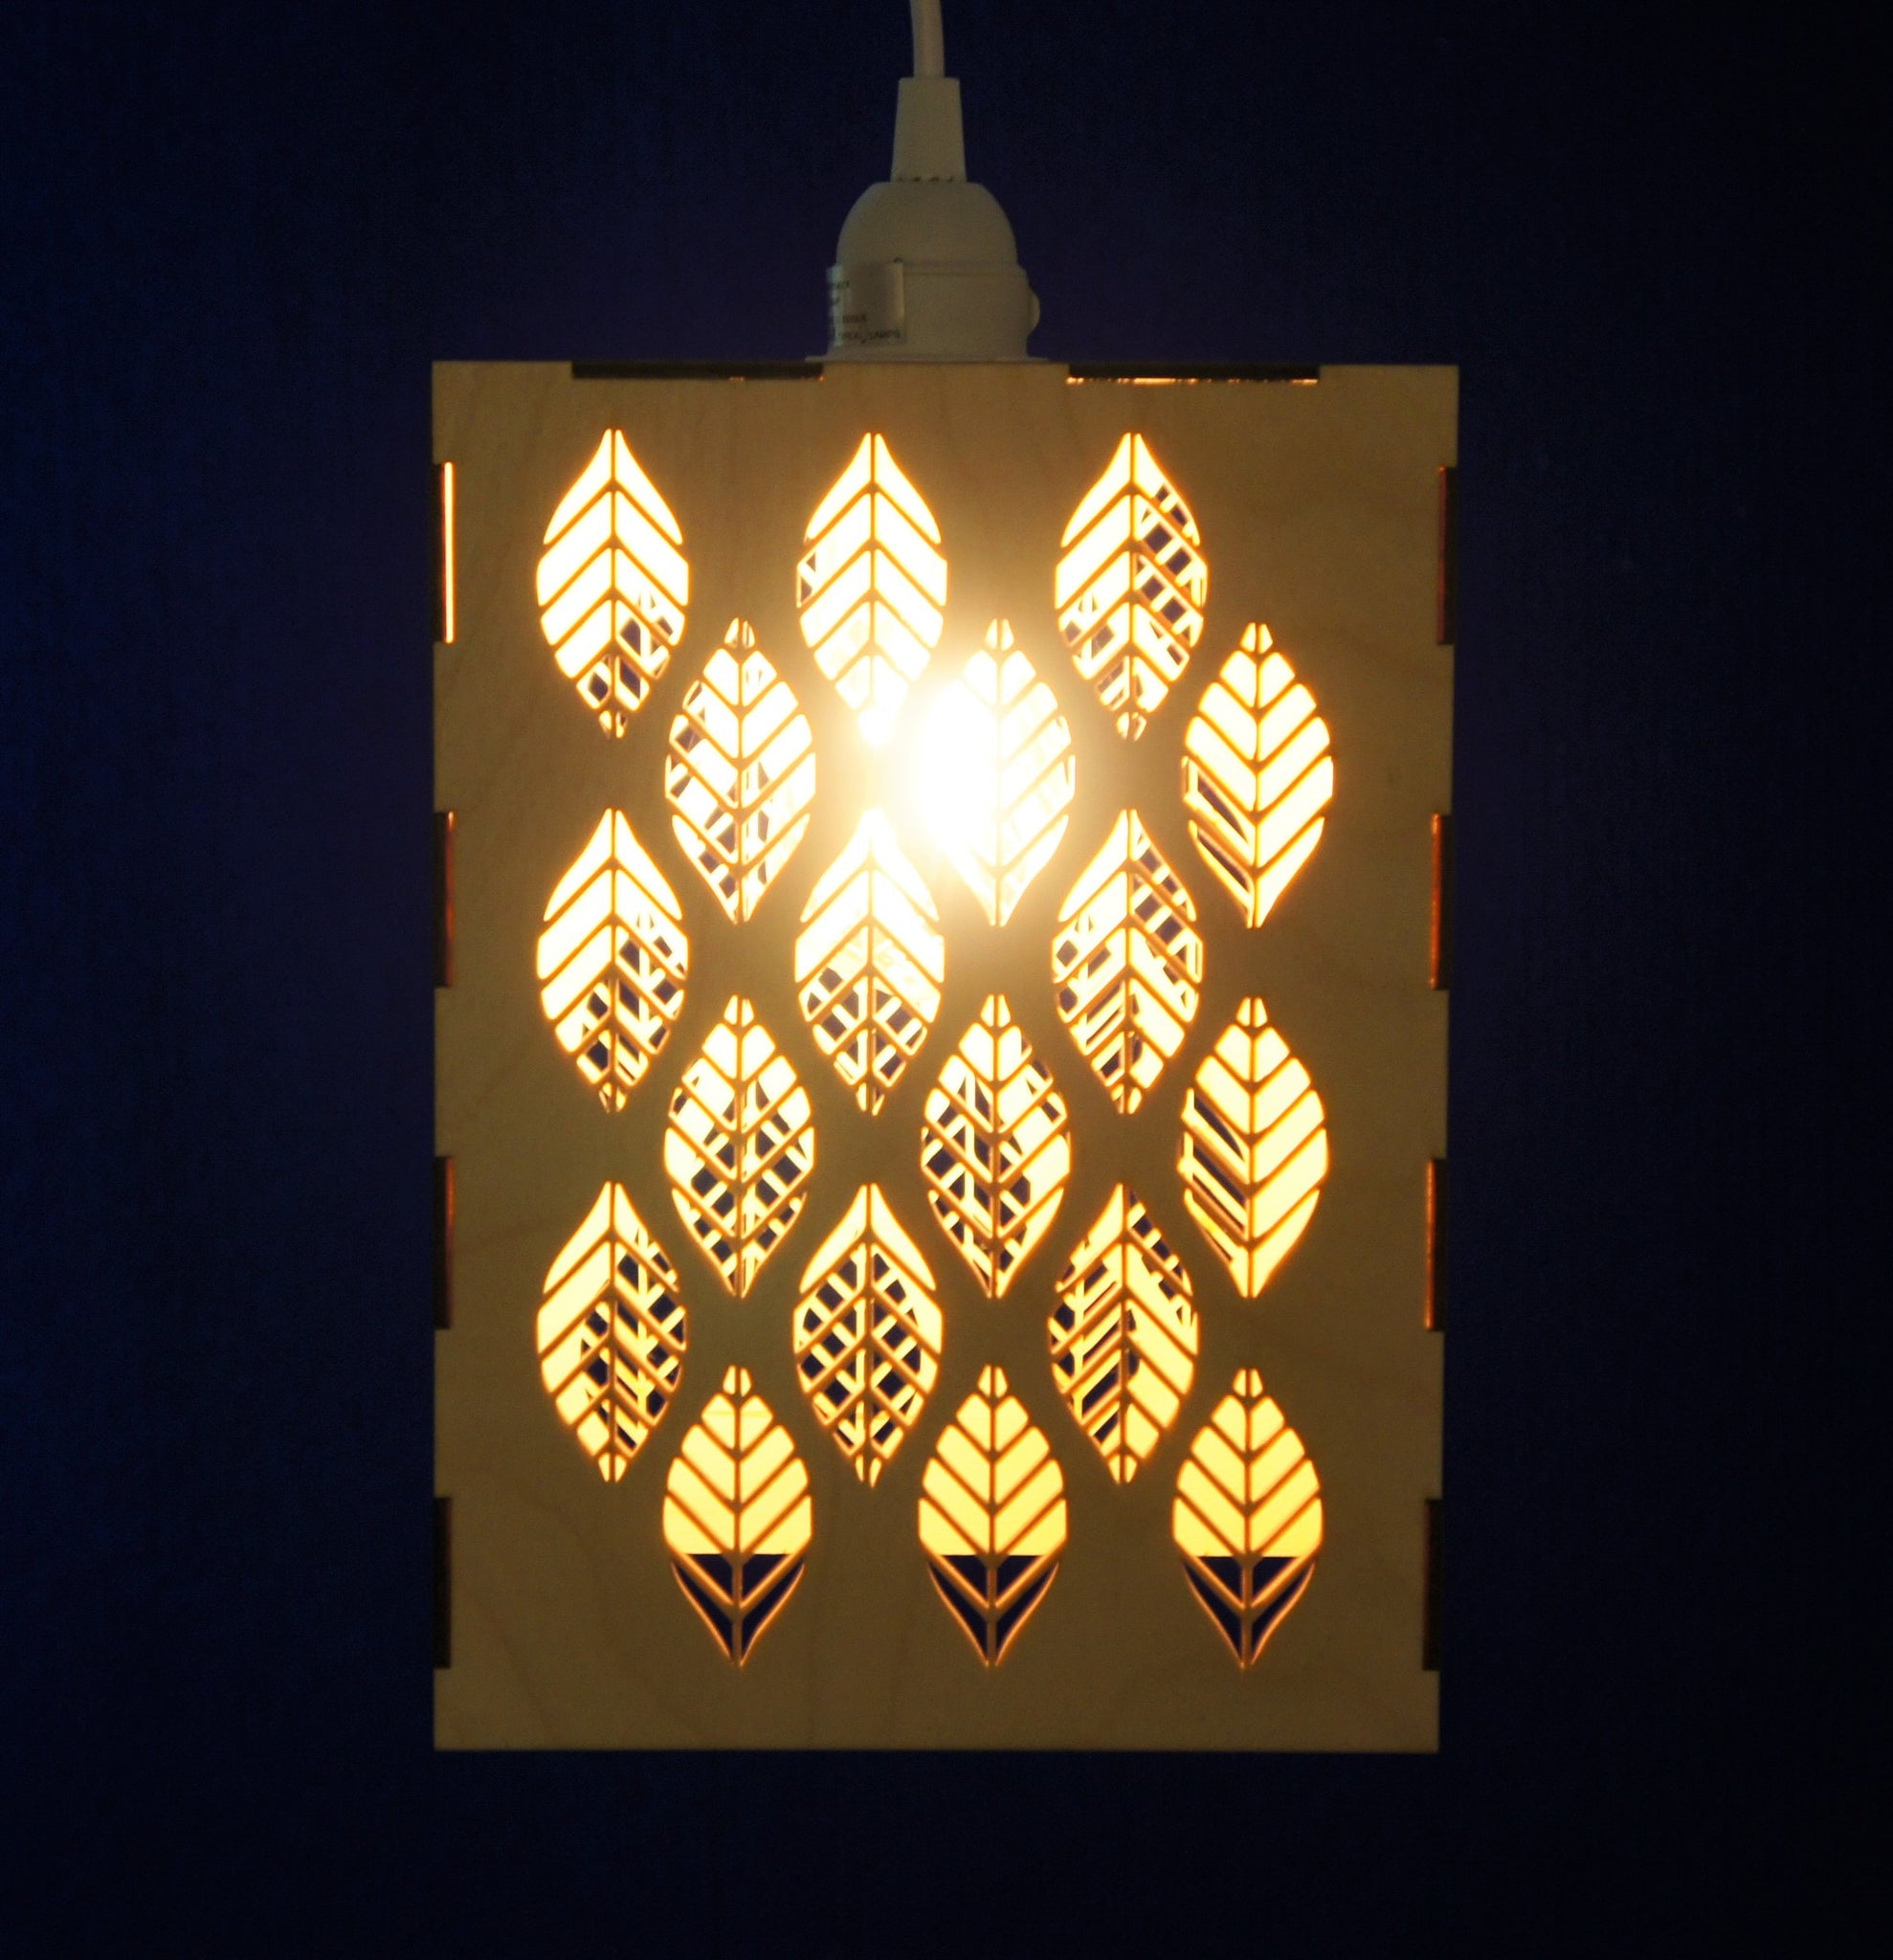 Hanging Lamp - Deco Leaf design